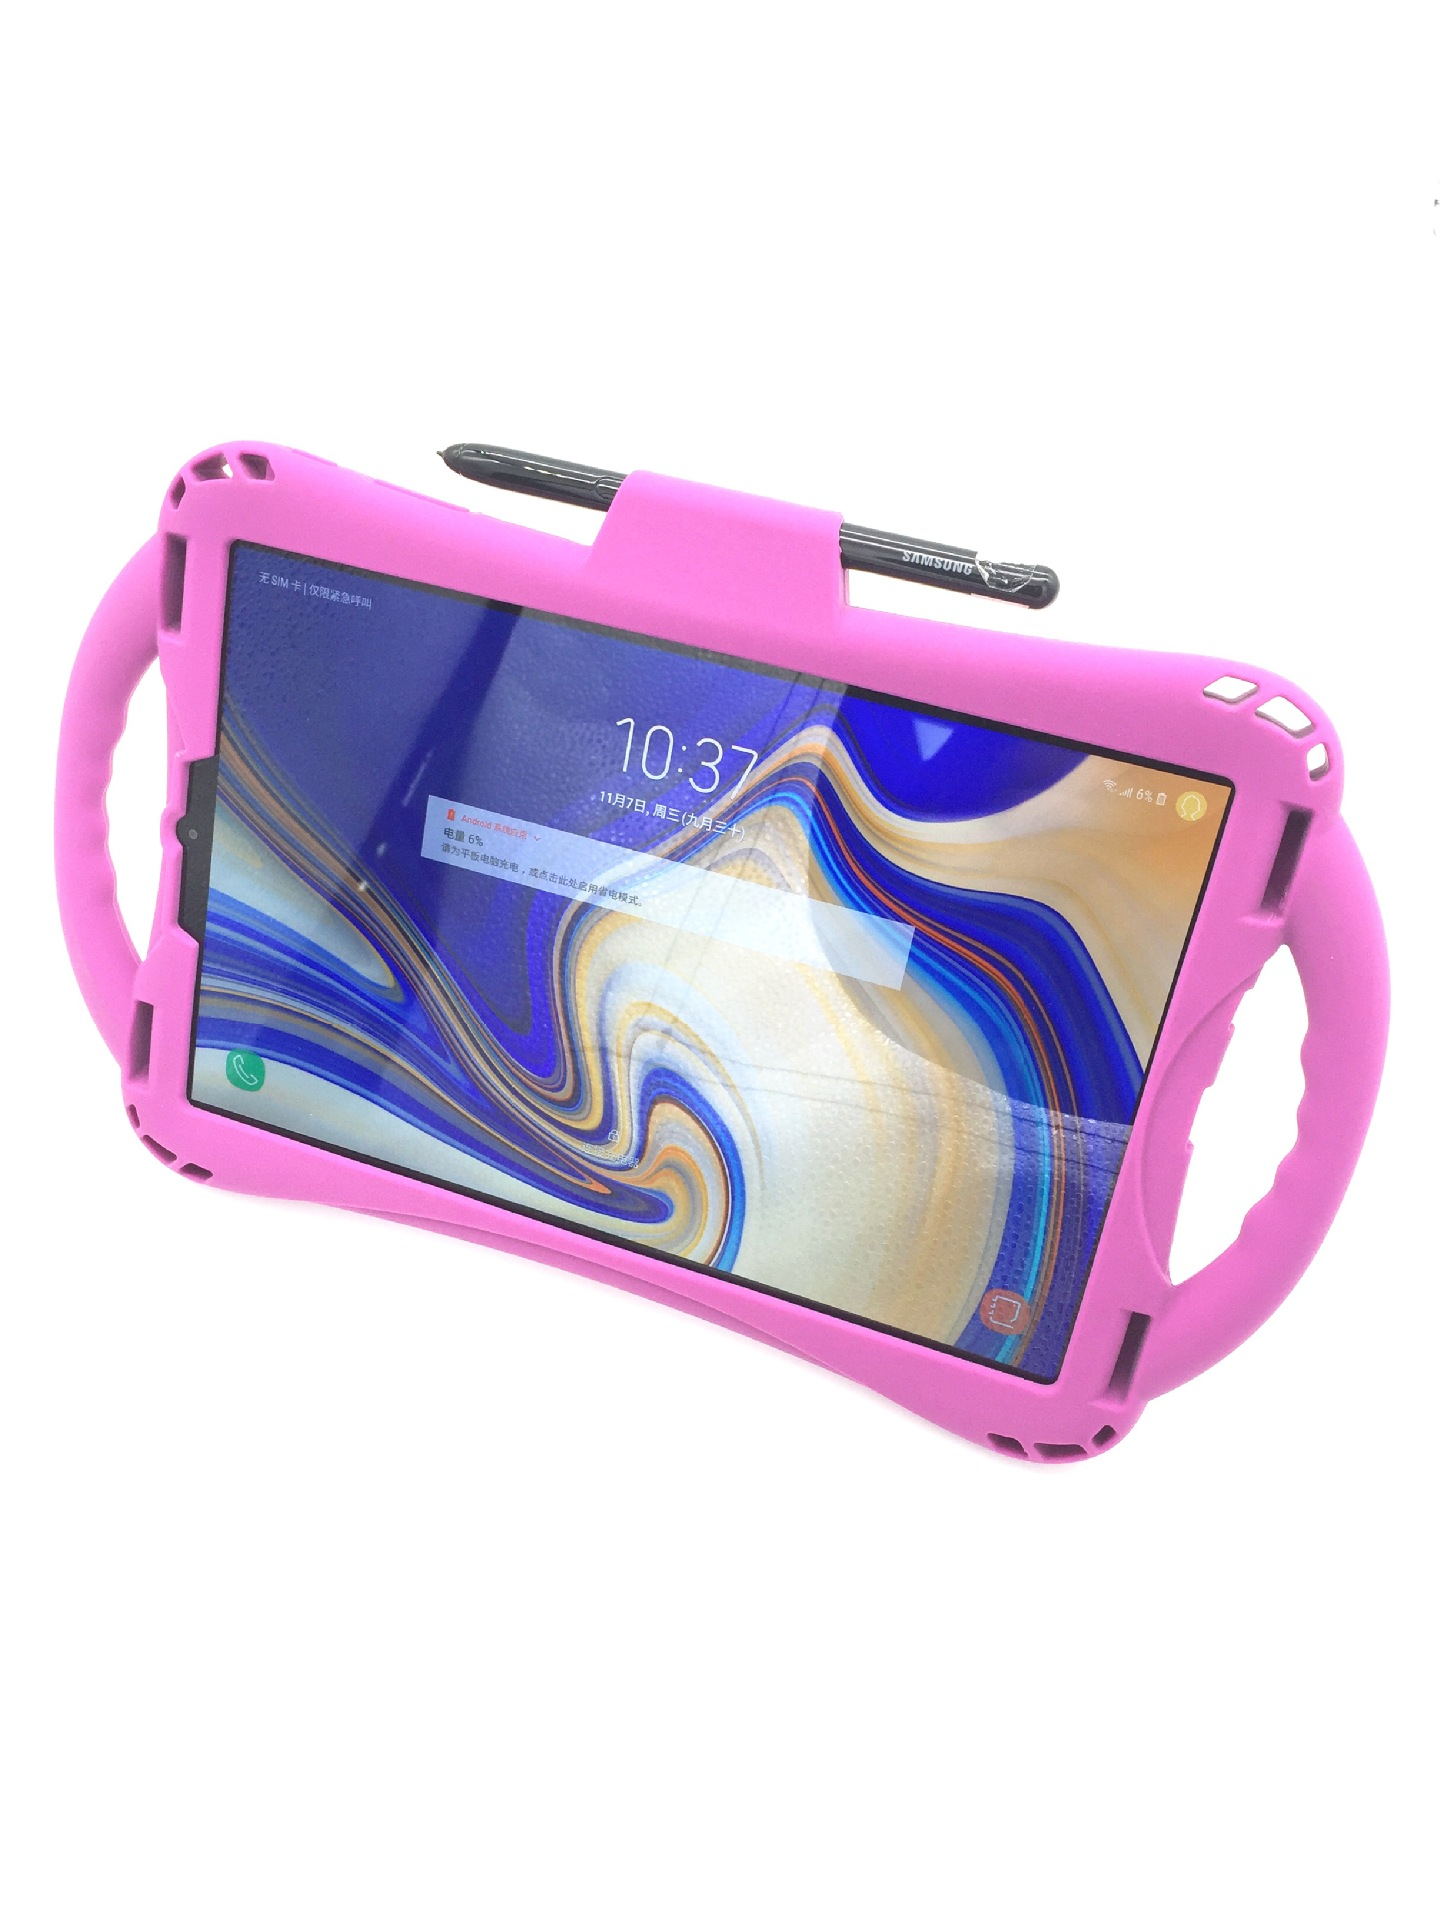 Phụ kiện ốp Samsung Tablet PC Silicone Case 10.1 inch